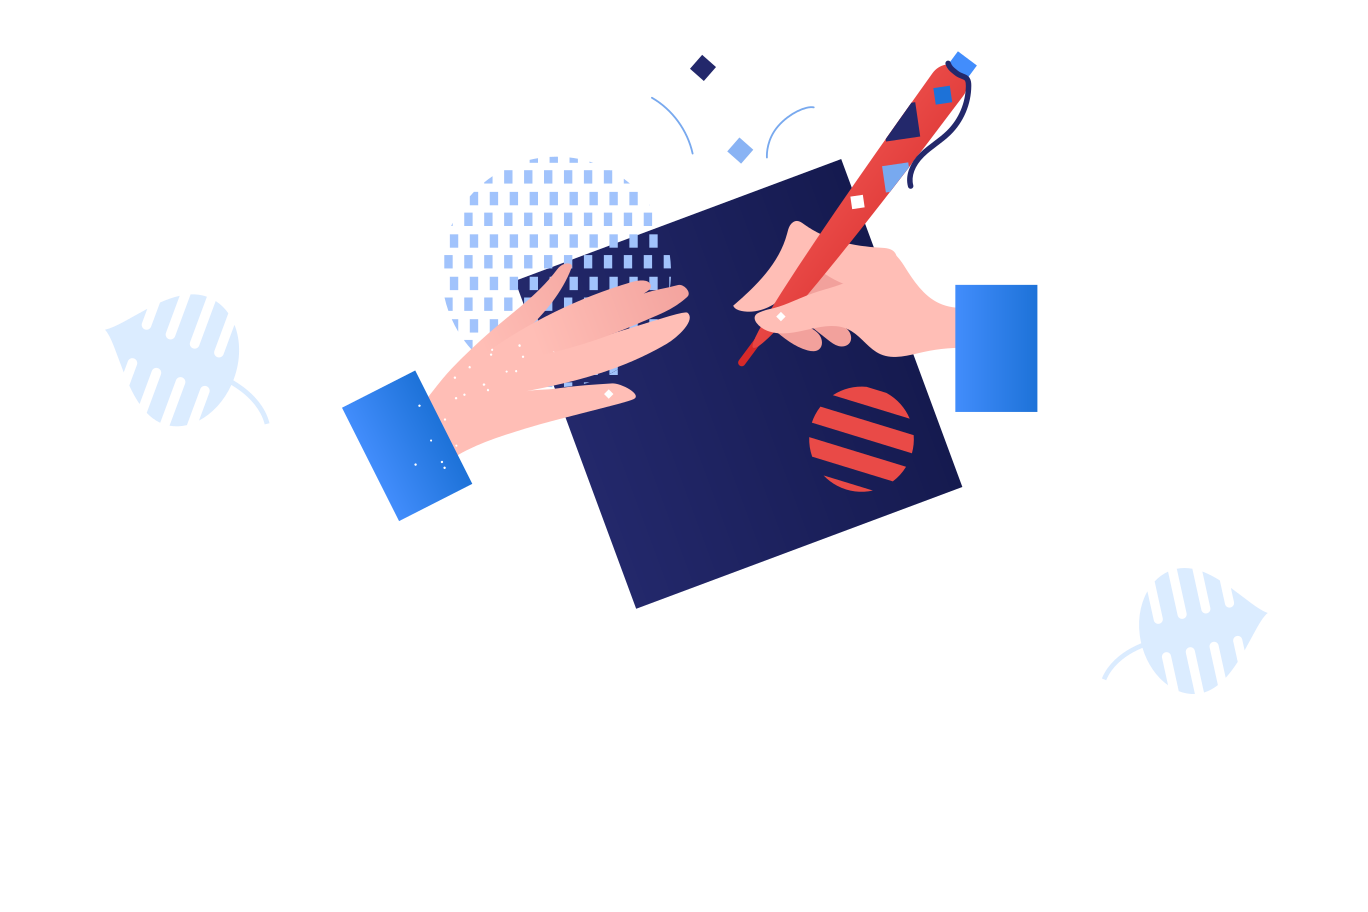 style Online business negotiation Vector images in PNG and SVG | Icons8 Illustrations